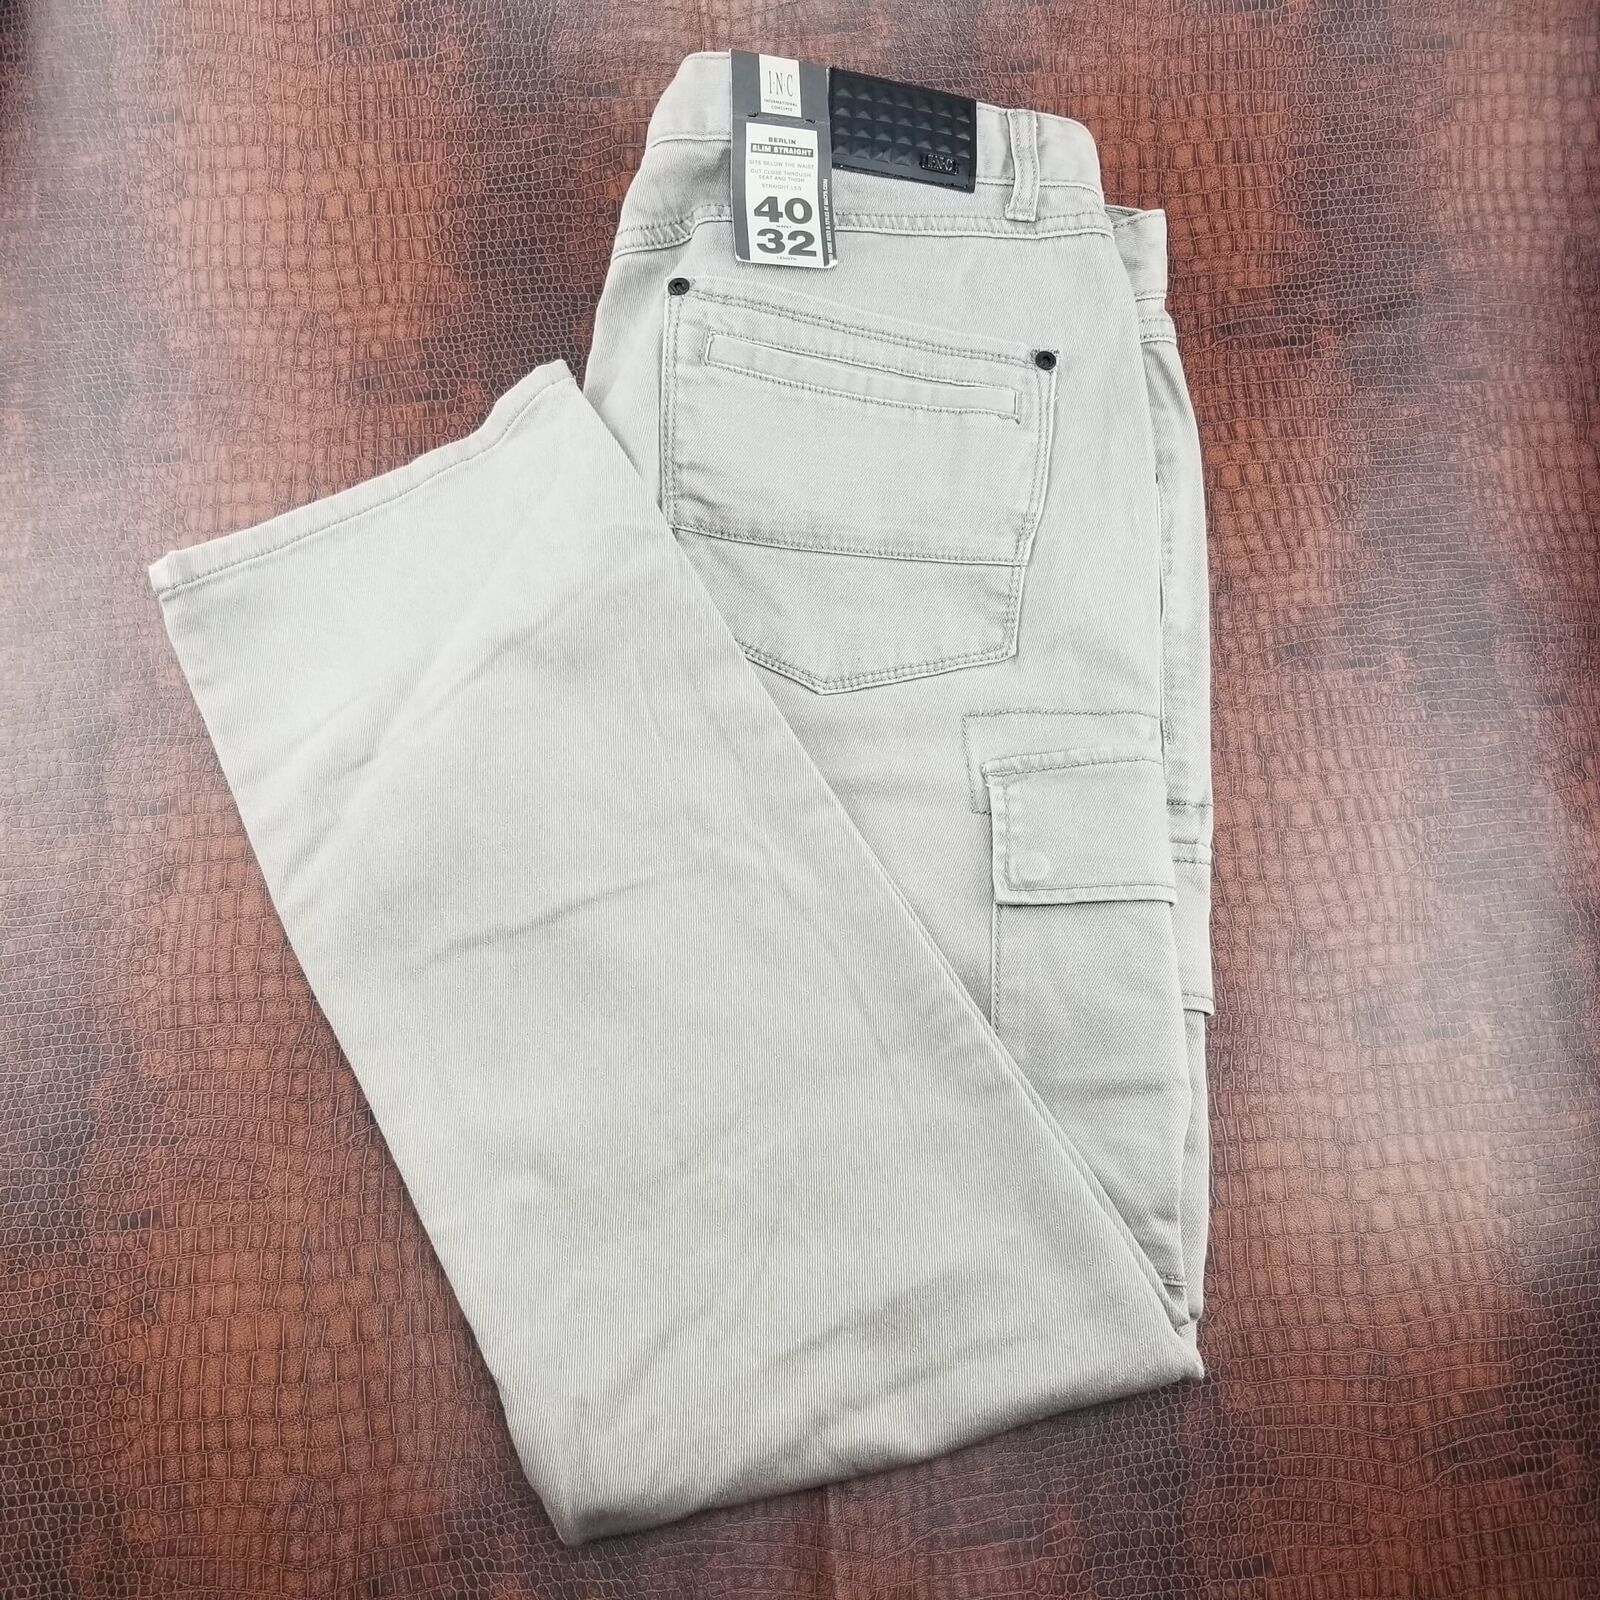 Primary image for INC International Concepts AC Men's Cargo Slim Straight Gray 40/32